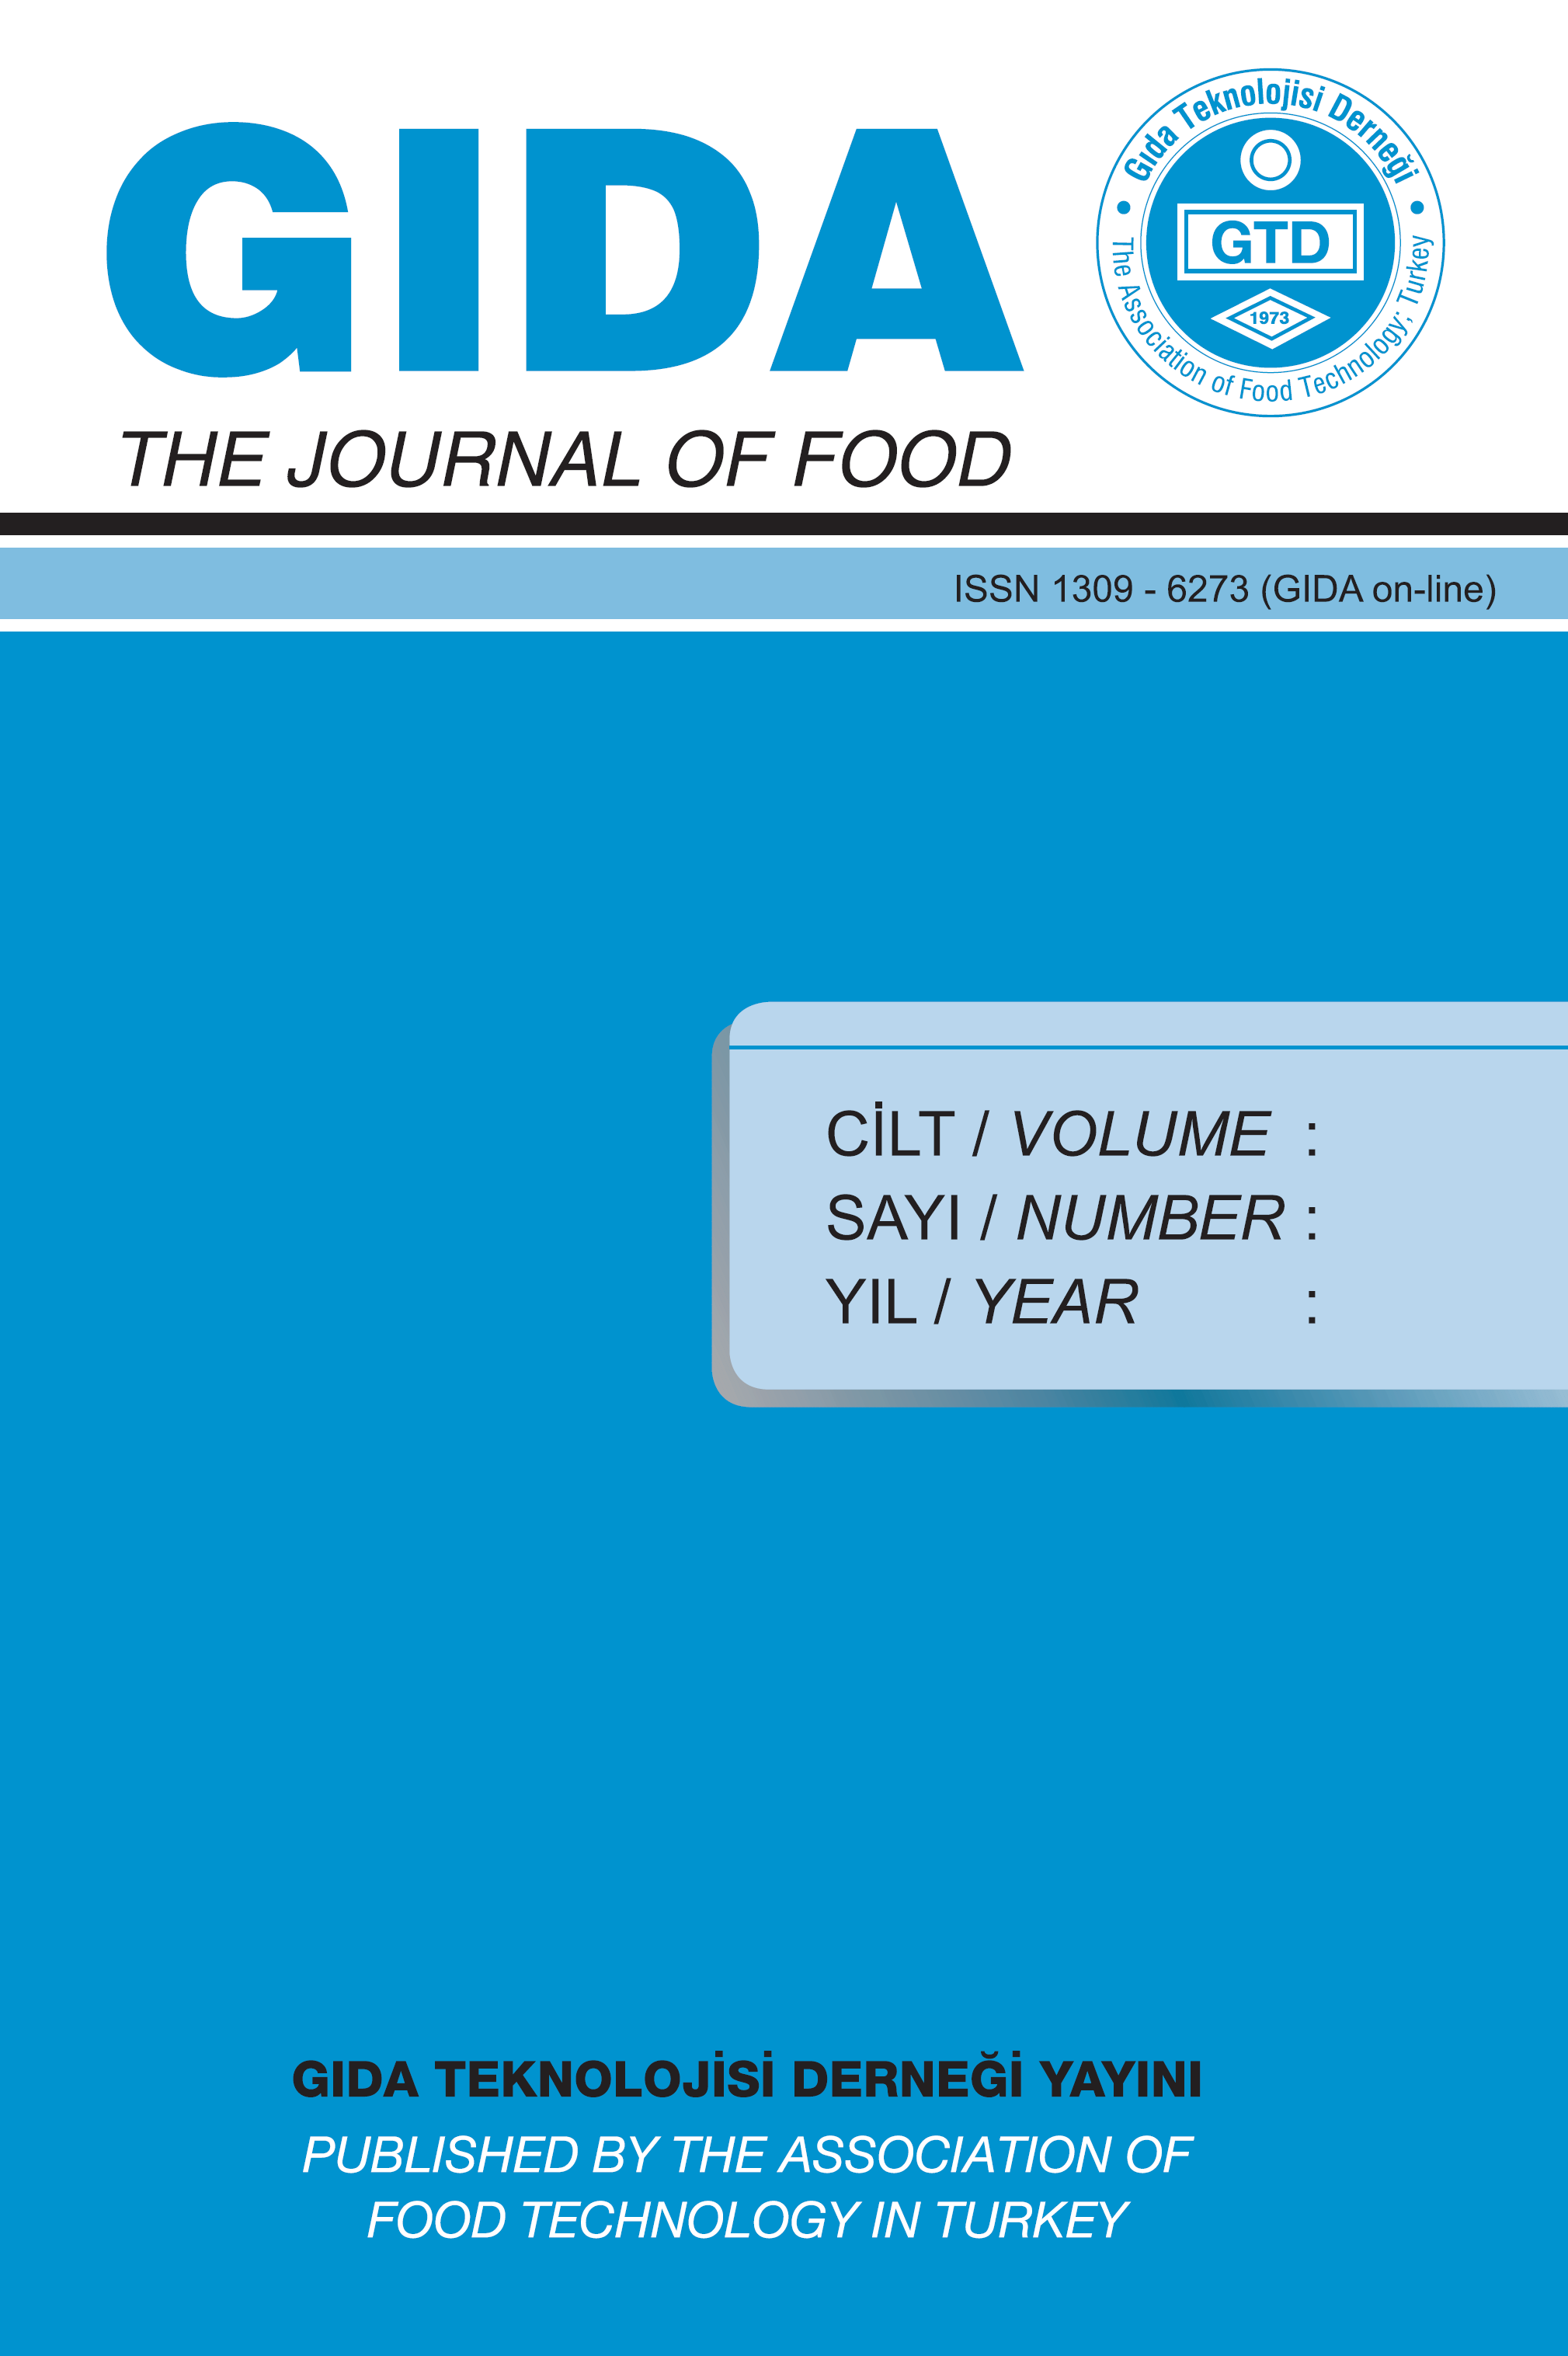 The Journal of Food